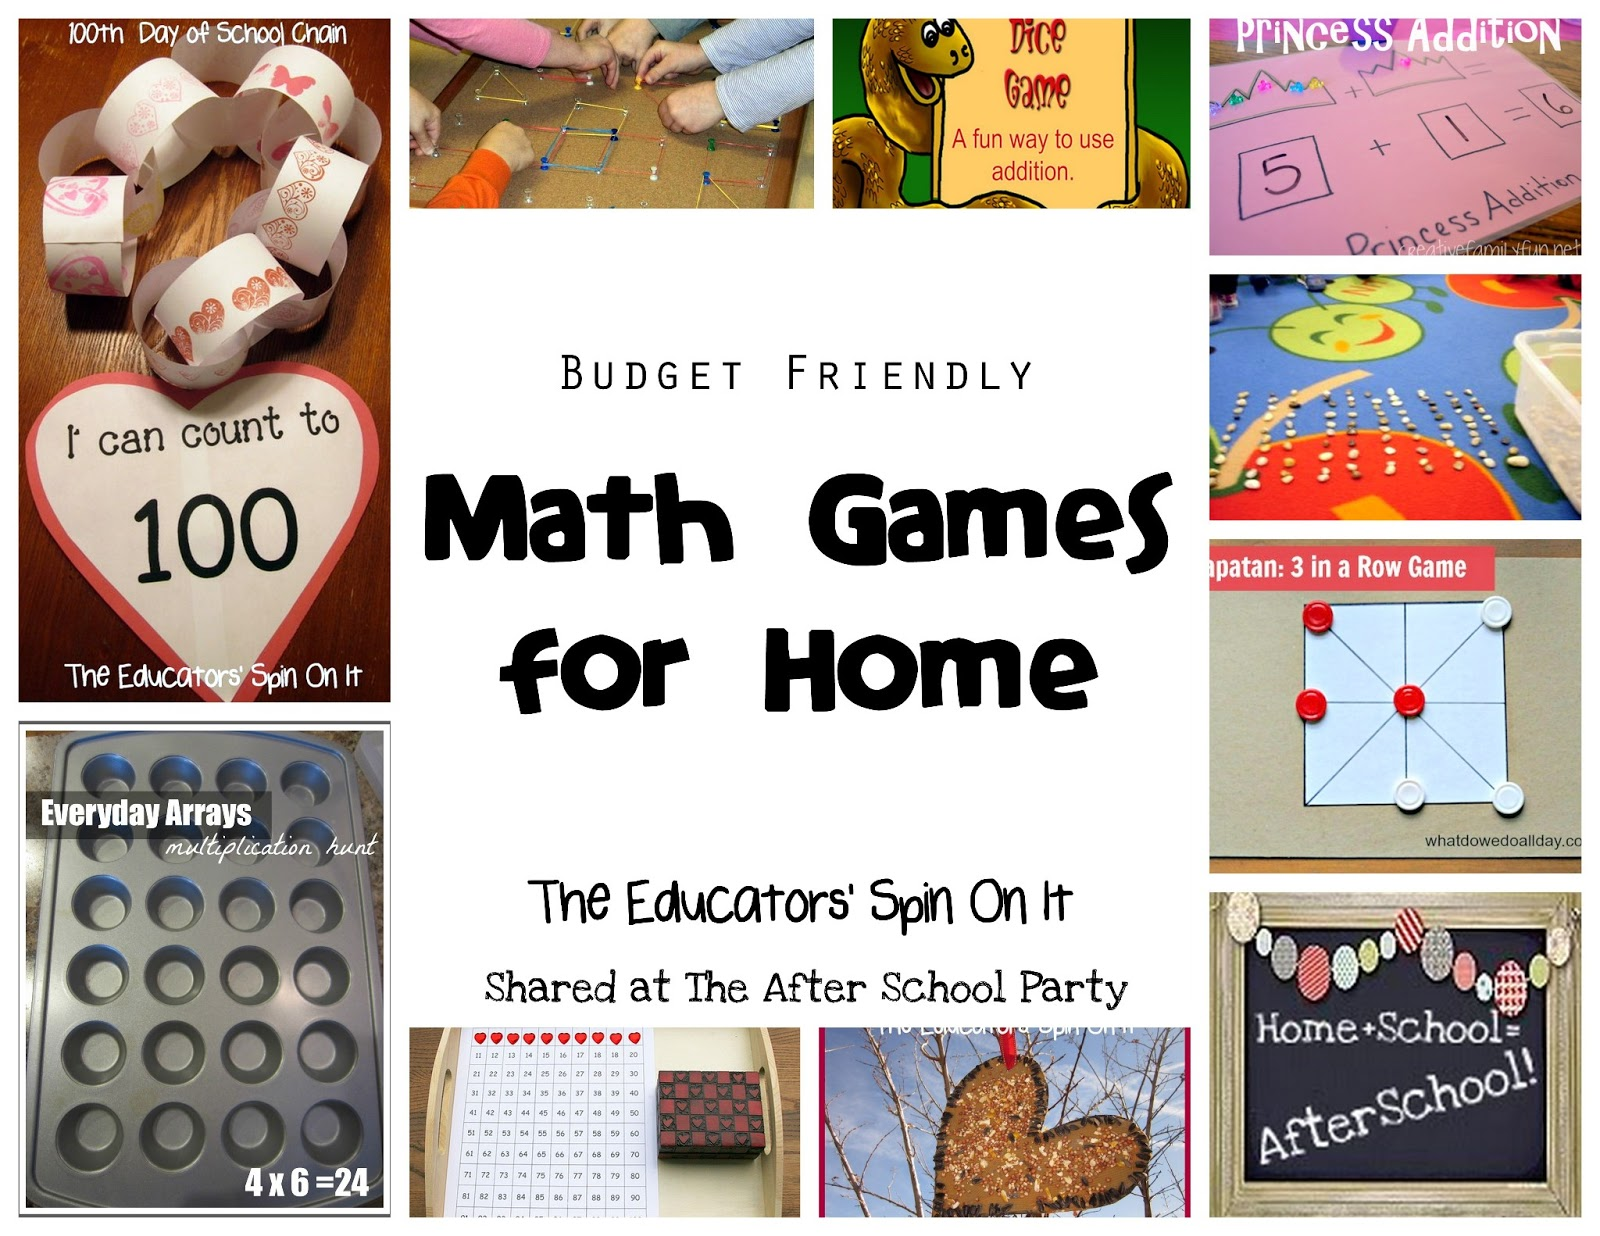 Budget Friendly Math Games For Home After School Link Up